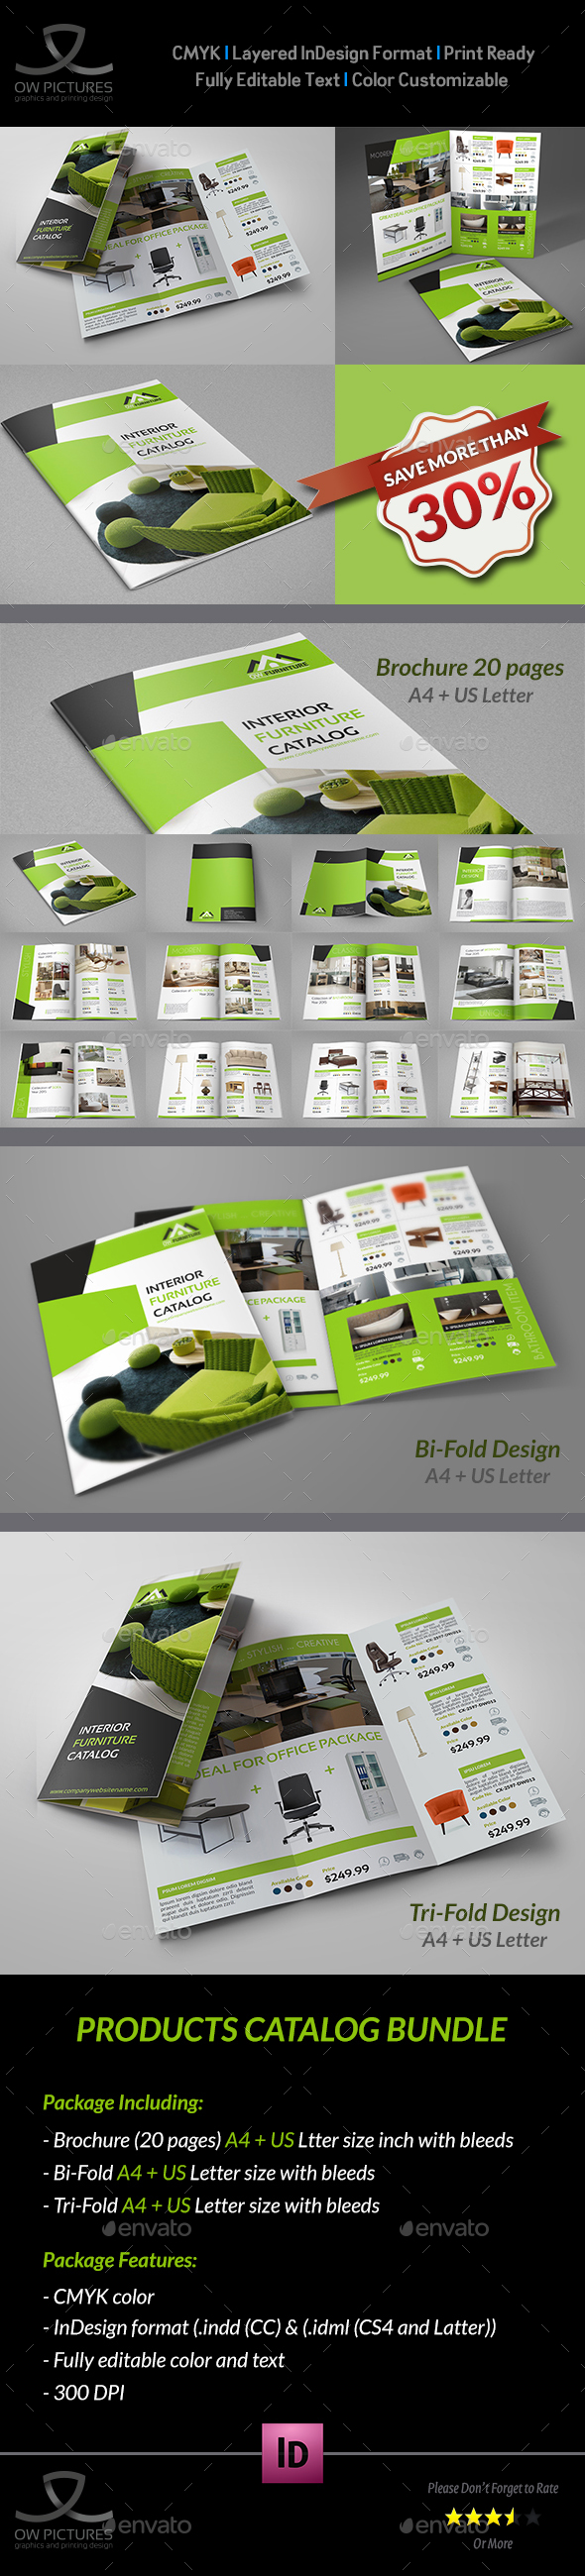 Products Catalog Brochure Bundle - Catalogs Brochures